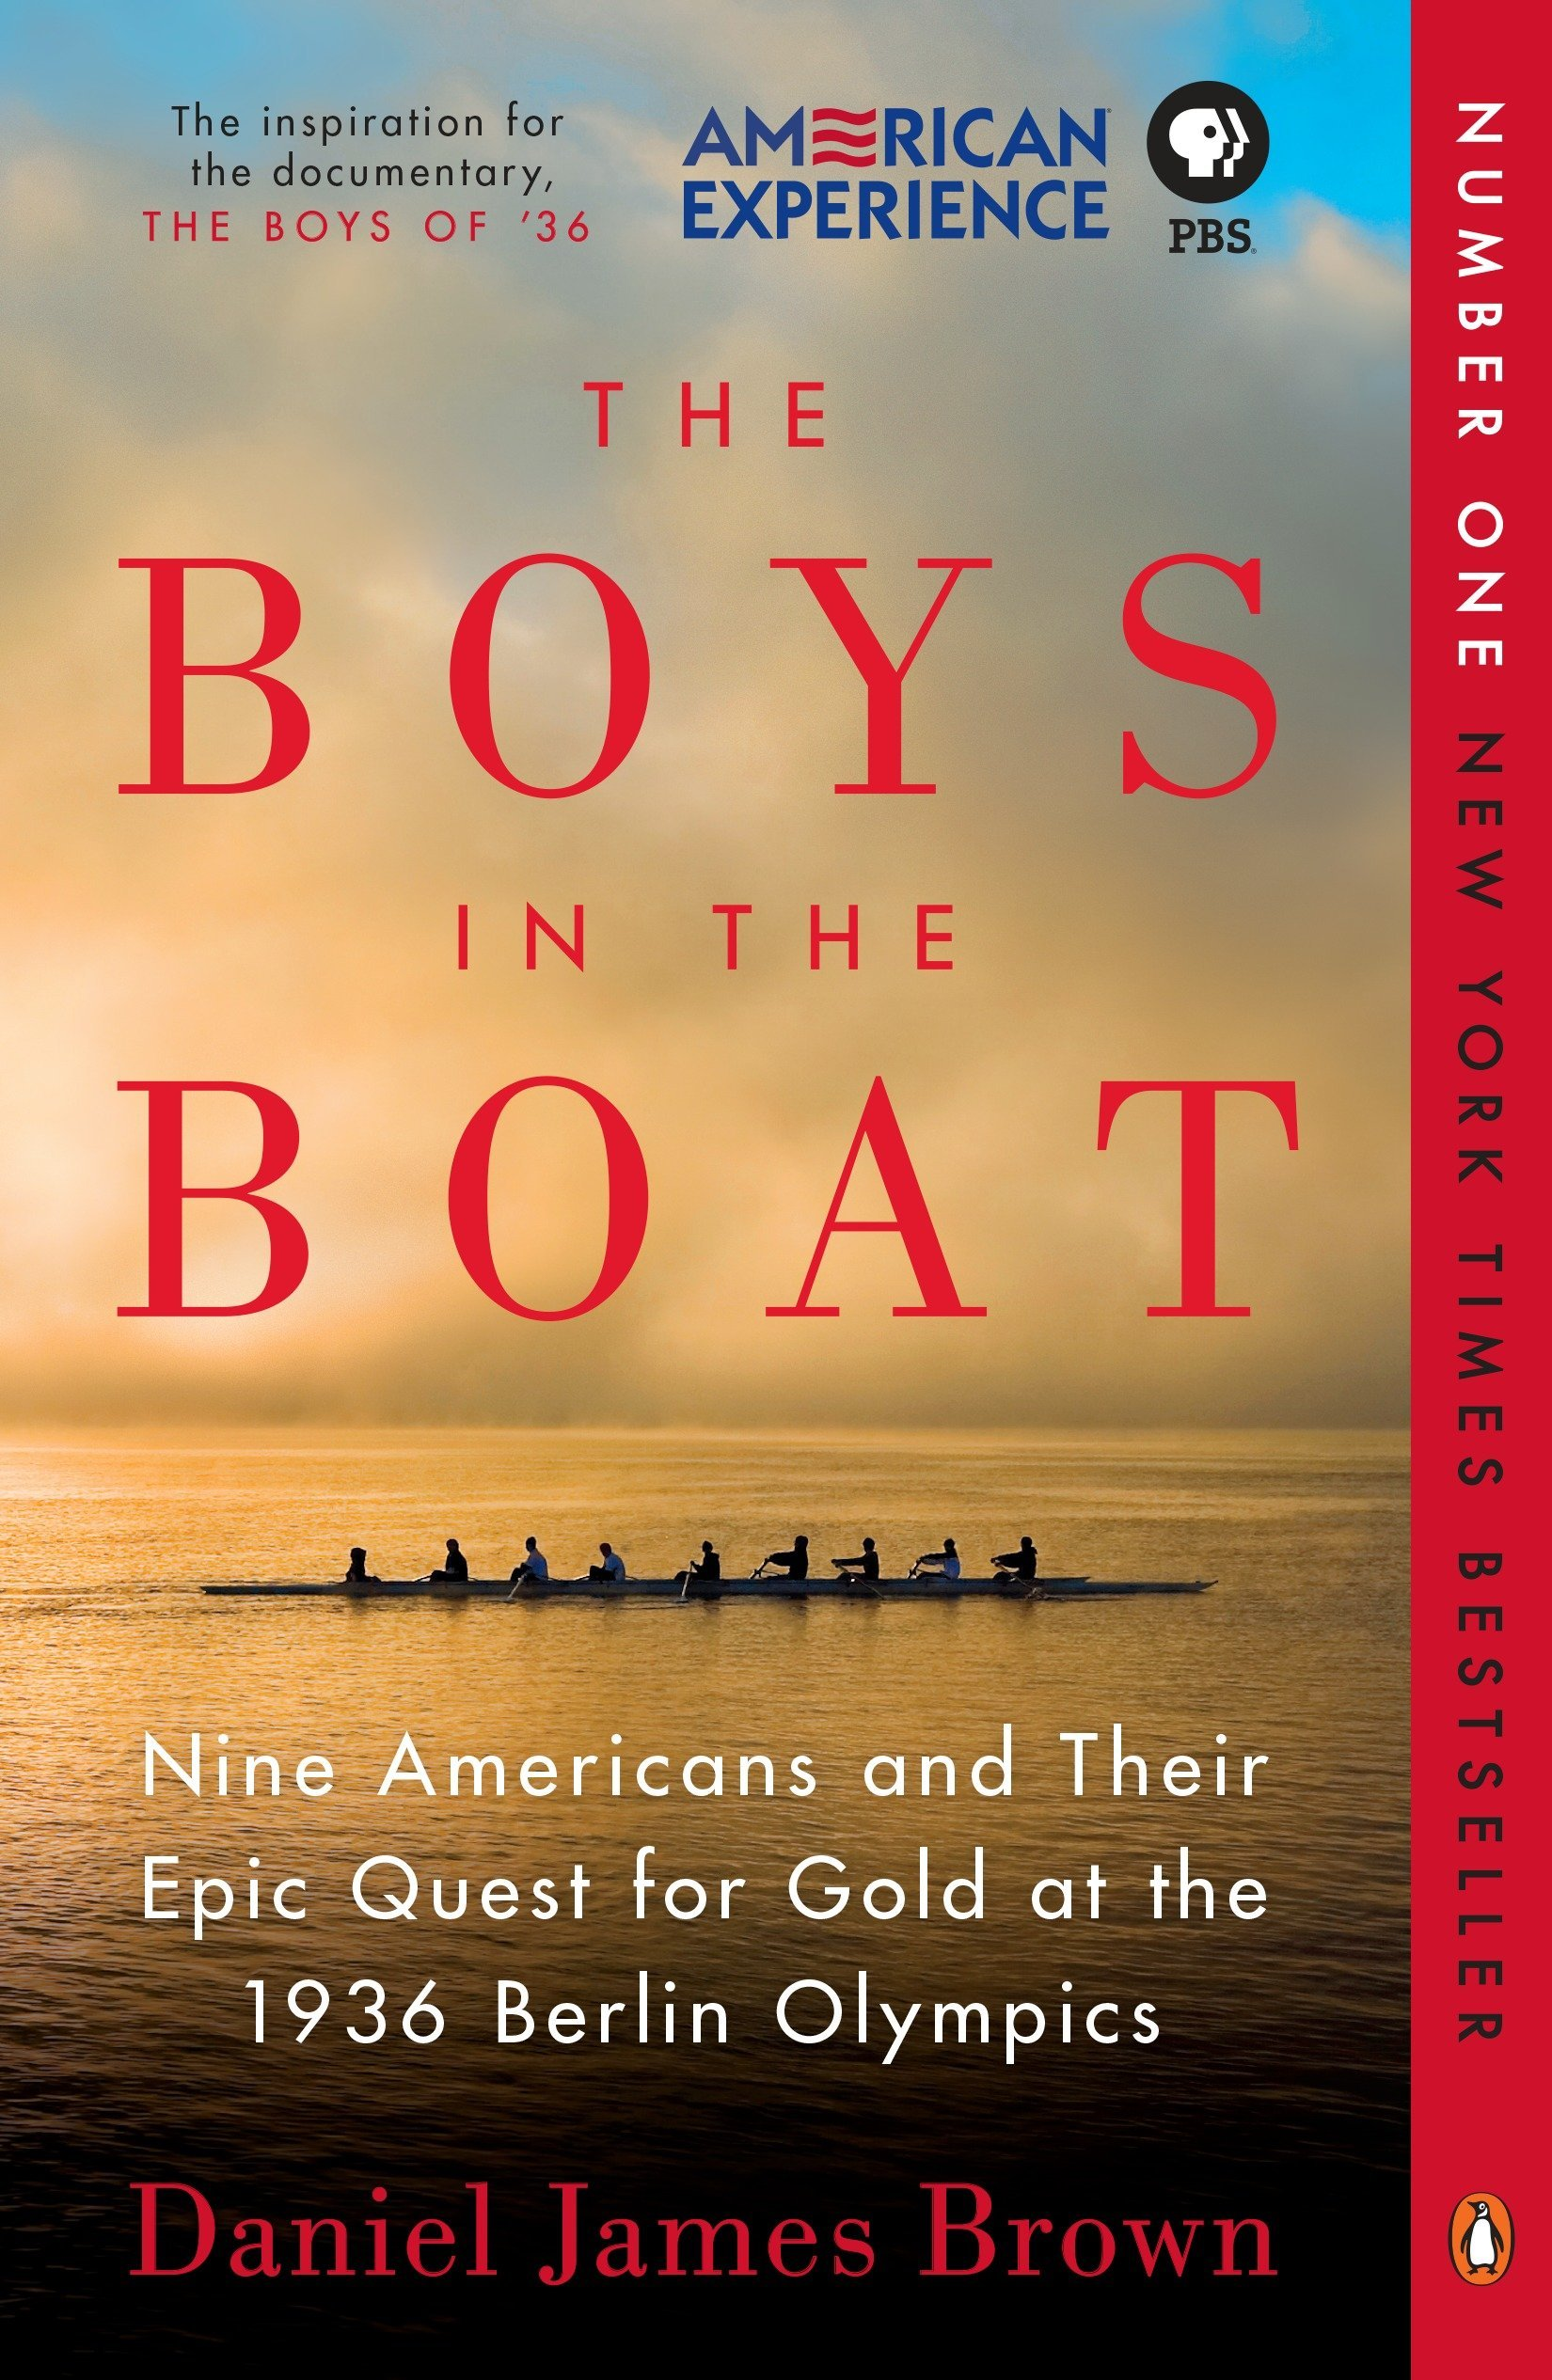 The Boys in the Boat: Nine Americans and Their Epic Quest for Gold at the 1936 Berlin Olympics by Penguin Books